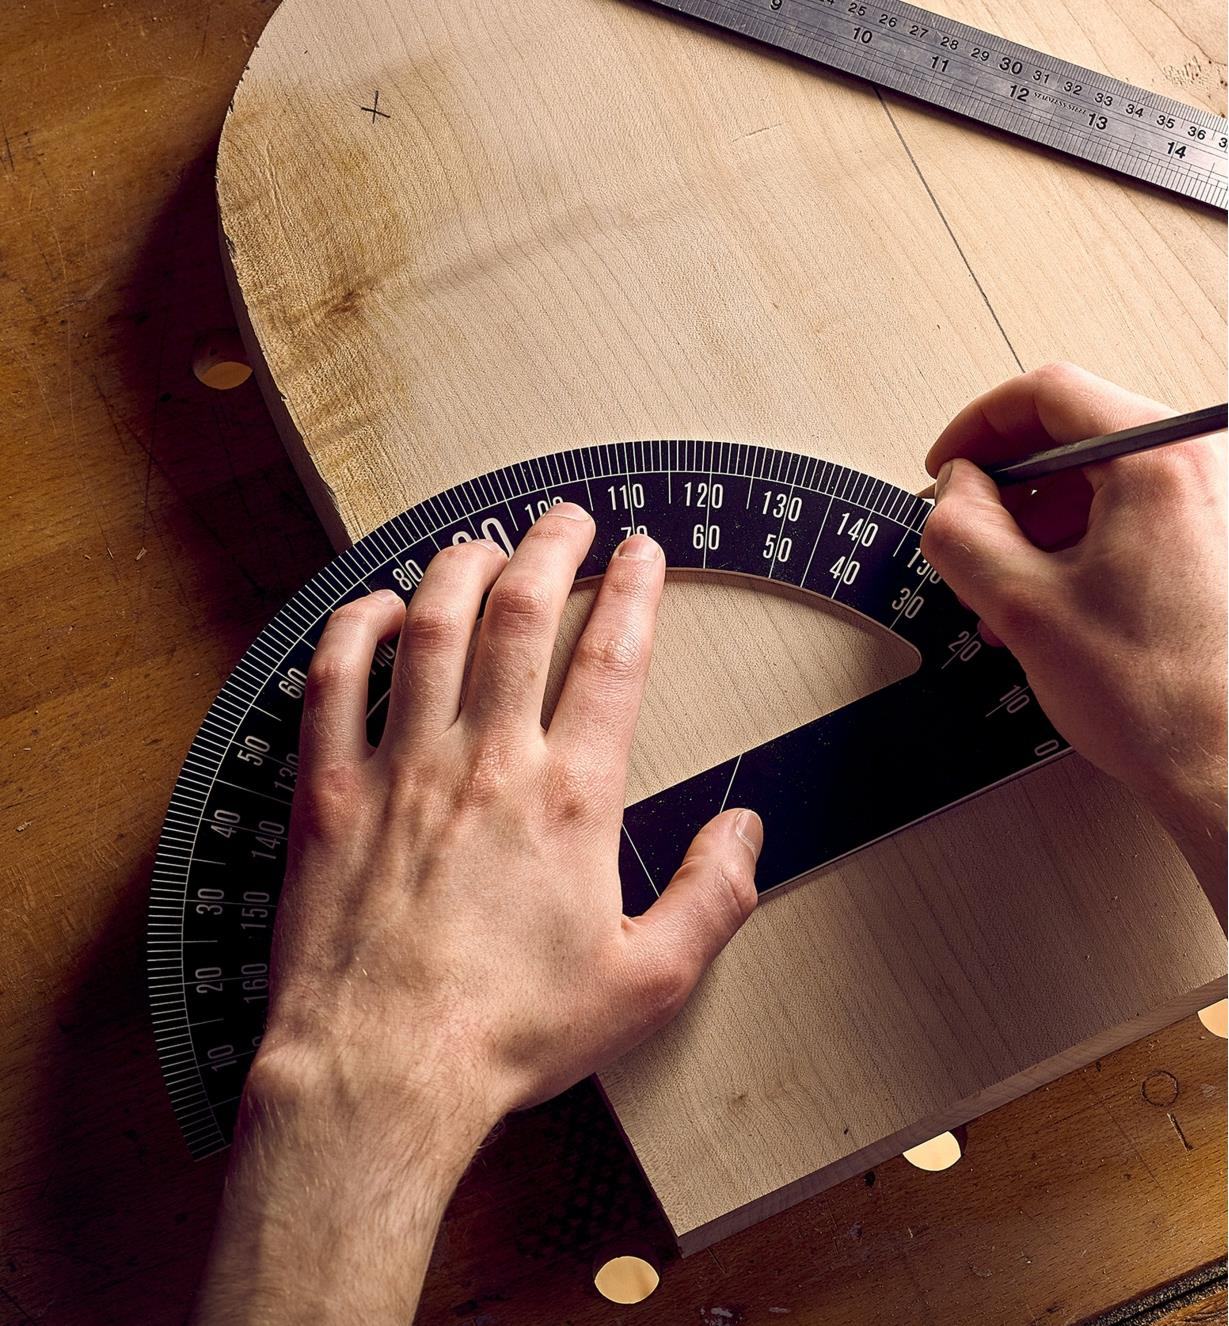 Marking an angle on a chair layout using the Crucible protractor